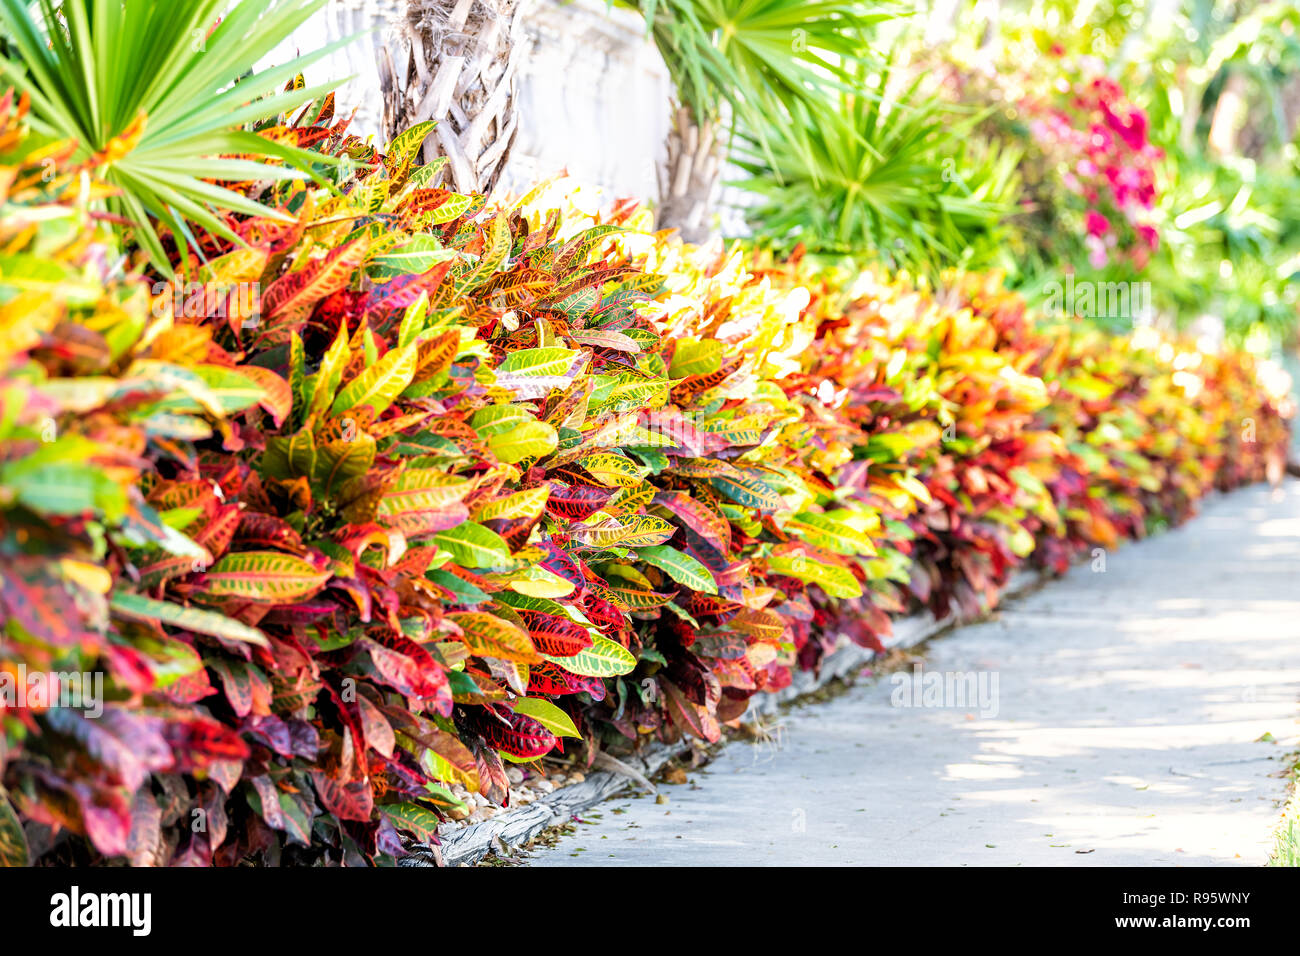 Vibrant Codiaeum Variegatum Petra Croton Variegated Plant Leaf Leaves Landscaped Garden Landscaping Along Wall Outside Outdoor Street Outdoors Stock Photo Alamy